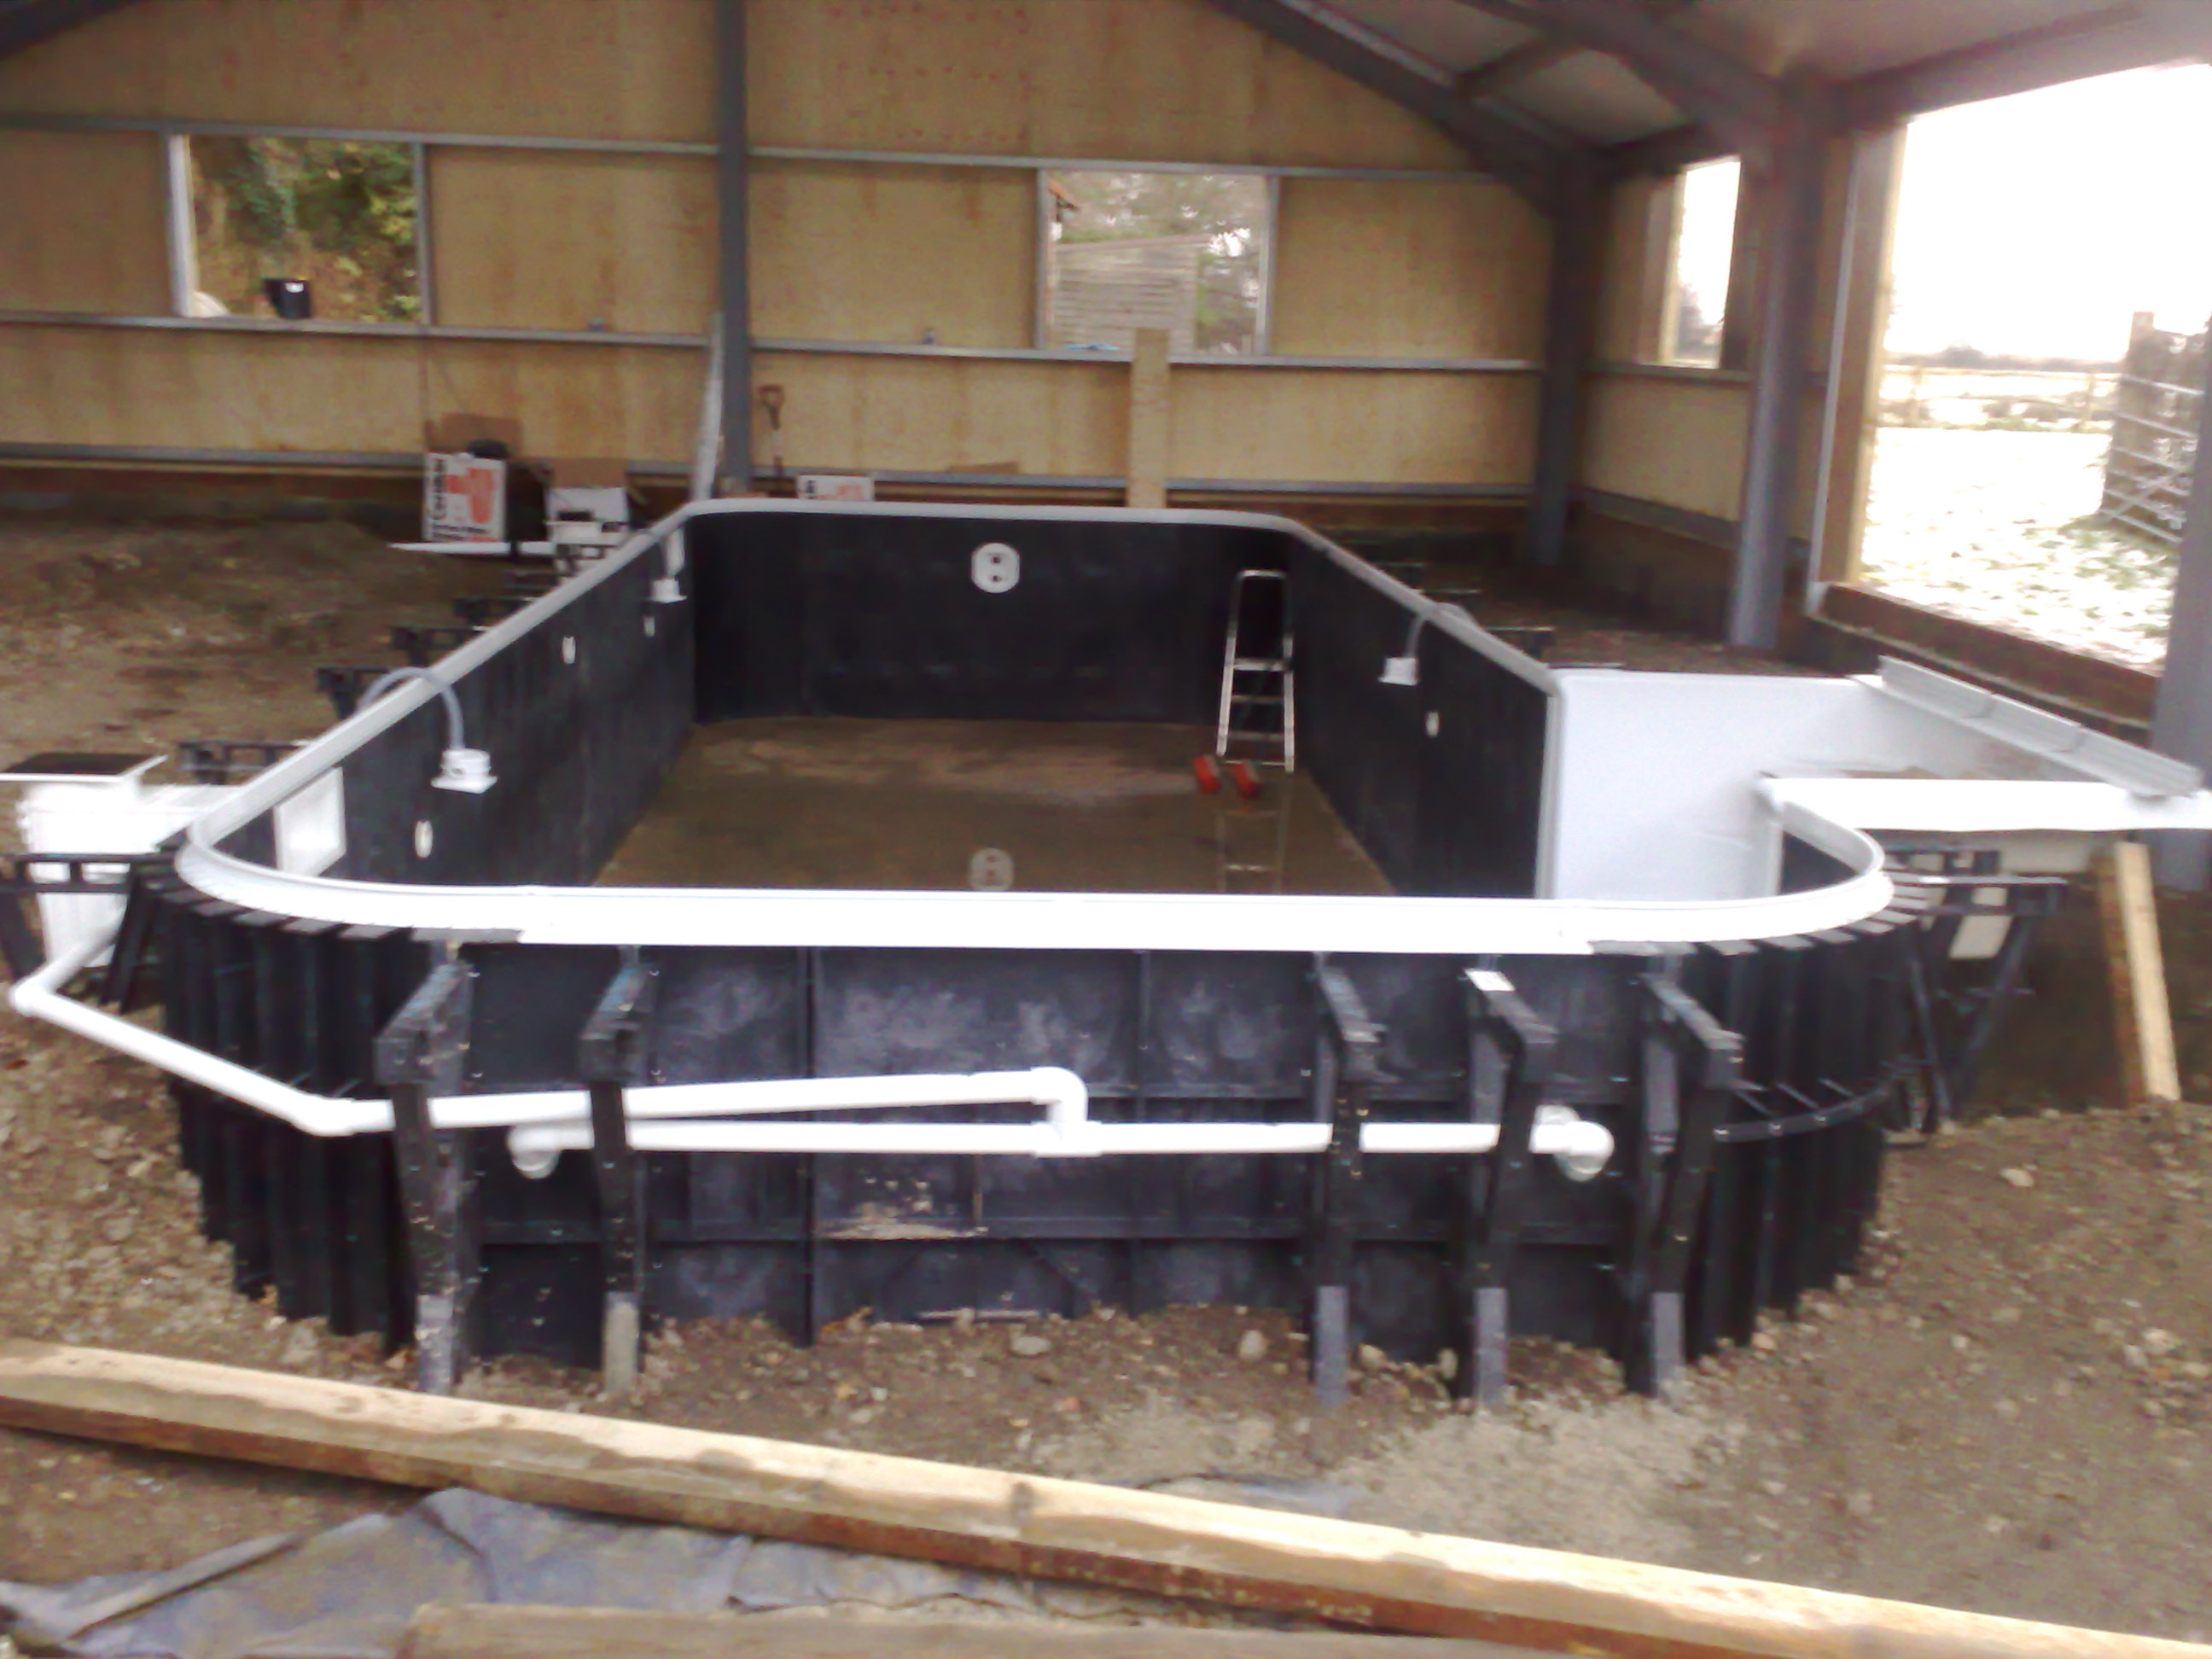 Kafko Polymer Panel swimming pool under construction